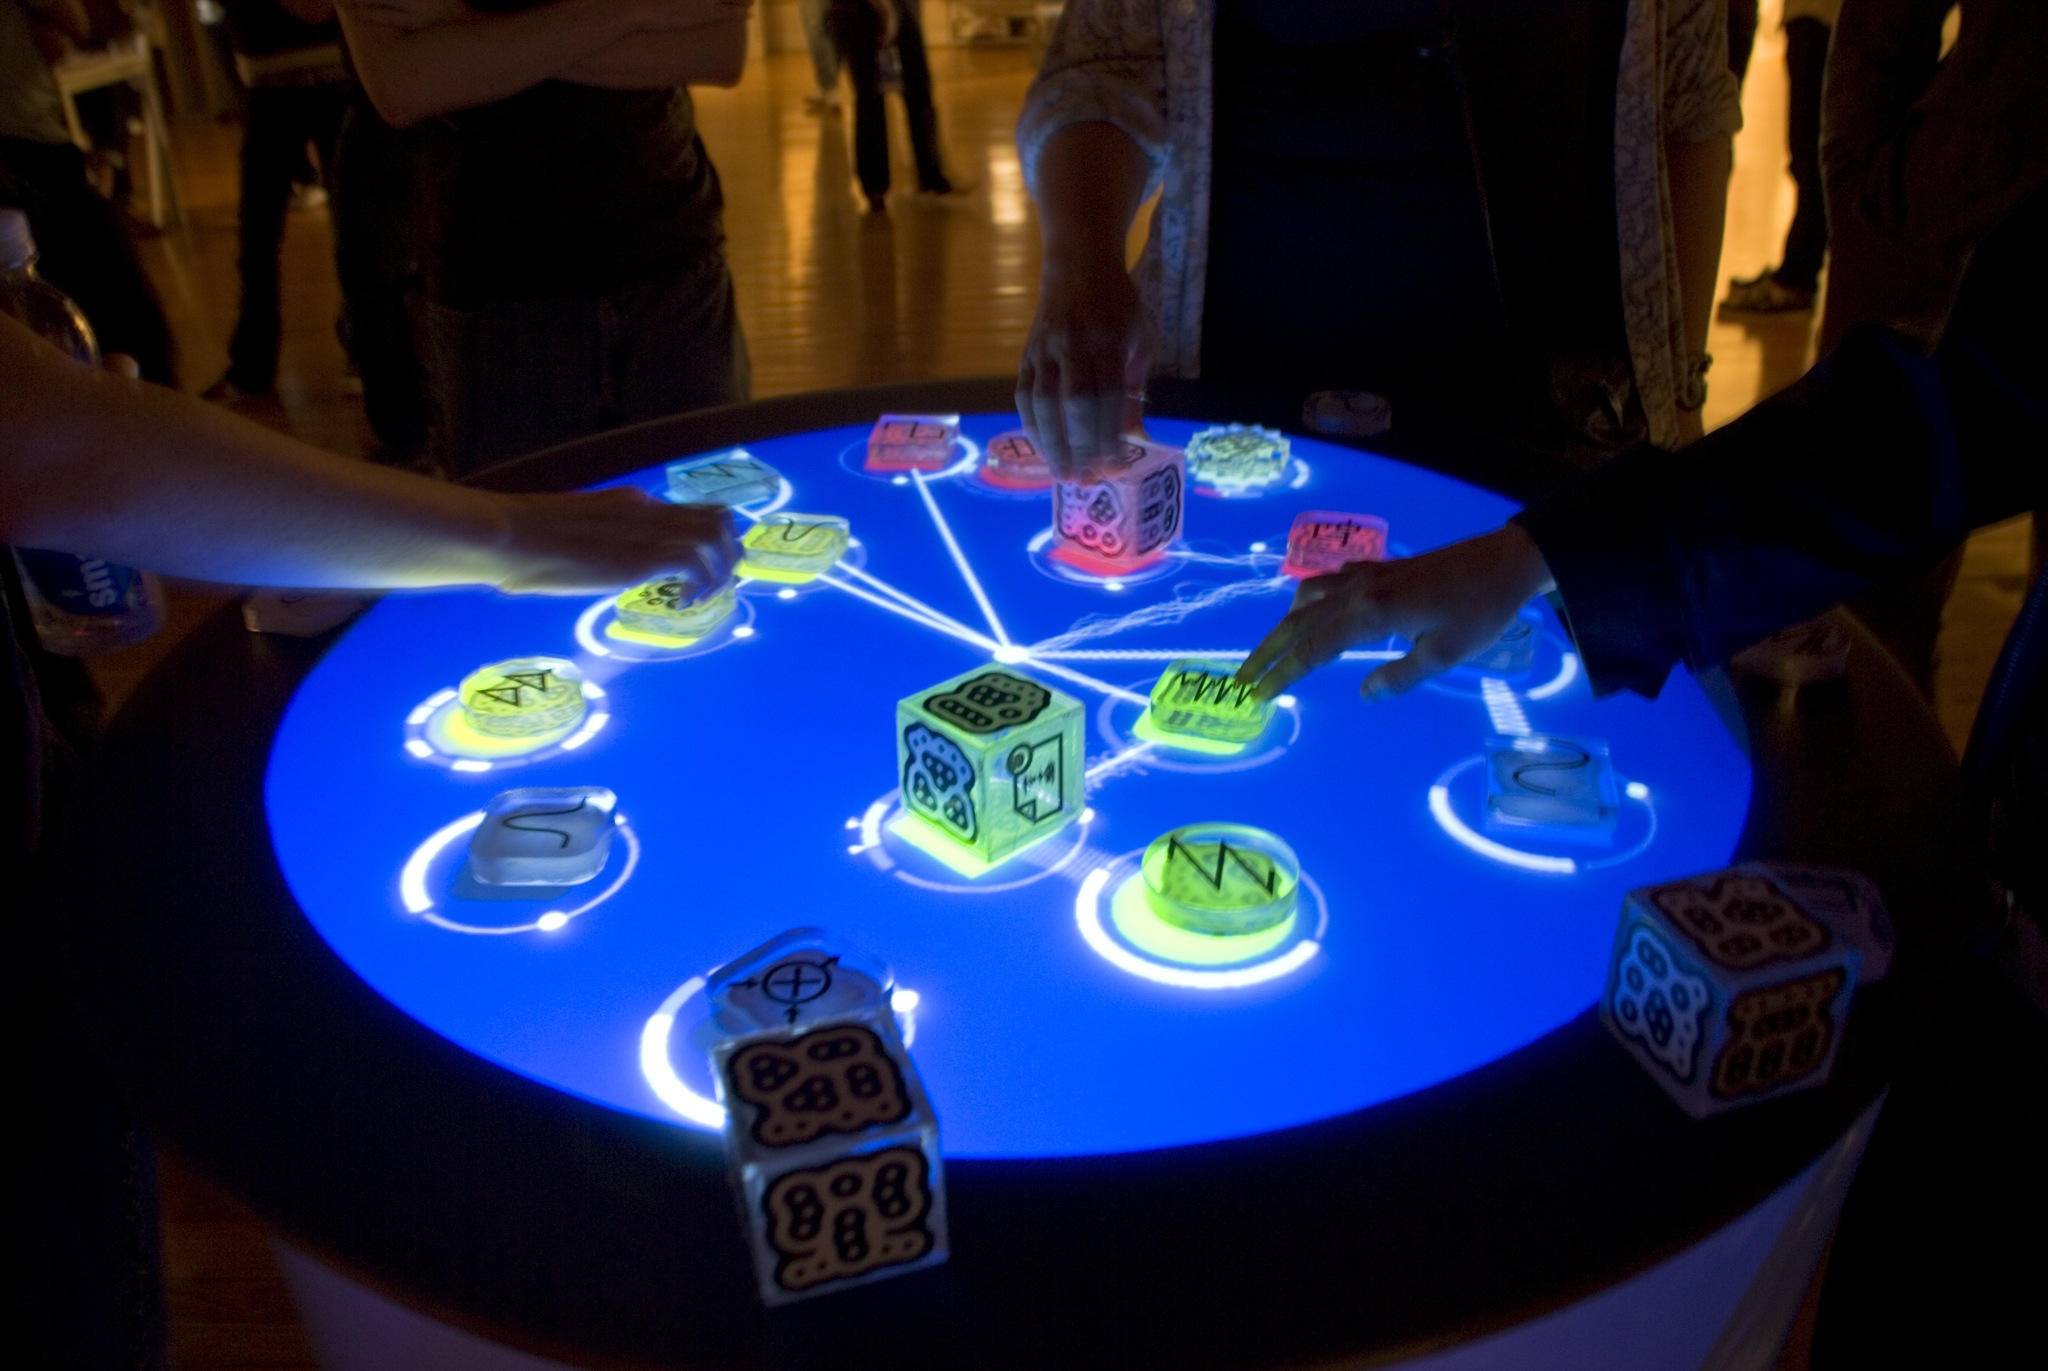 Reactable: An example of a musical instrument that is built using a tangible user interface. Music is created by positioning cubes on the table, rotating them, and creating links between cubes.